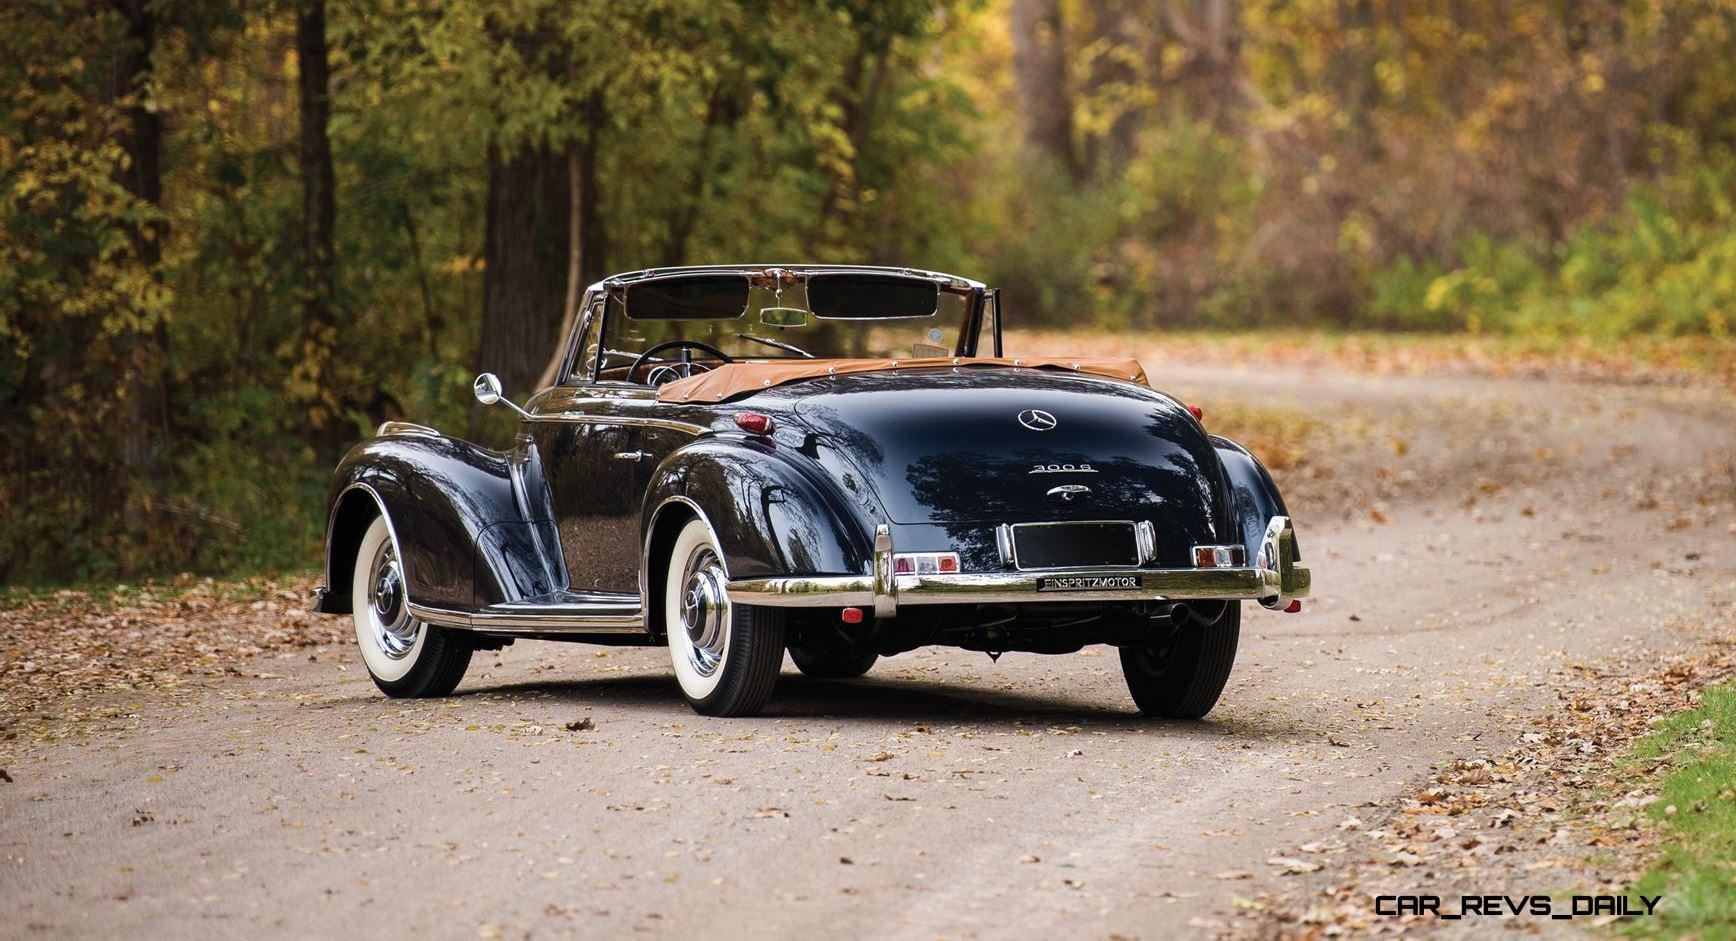 1955 56 Mercedes Benz 300sc And 300s Roadster Set To Stun